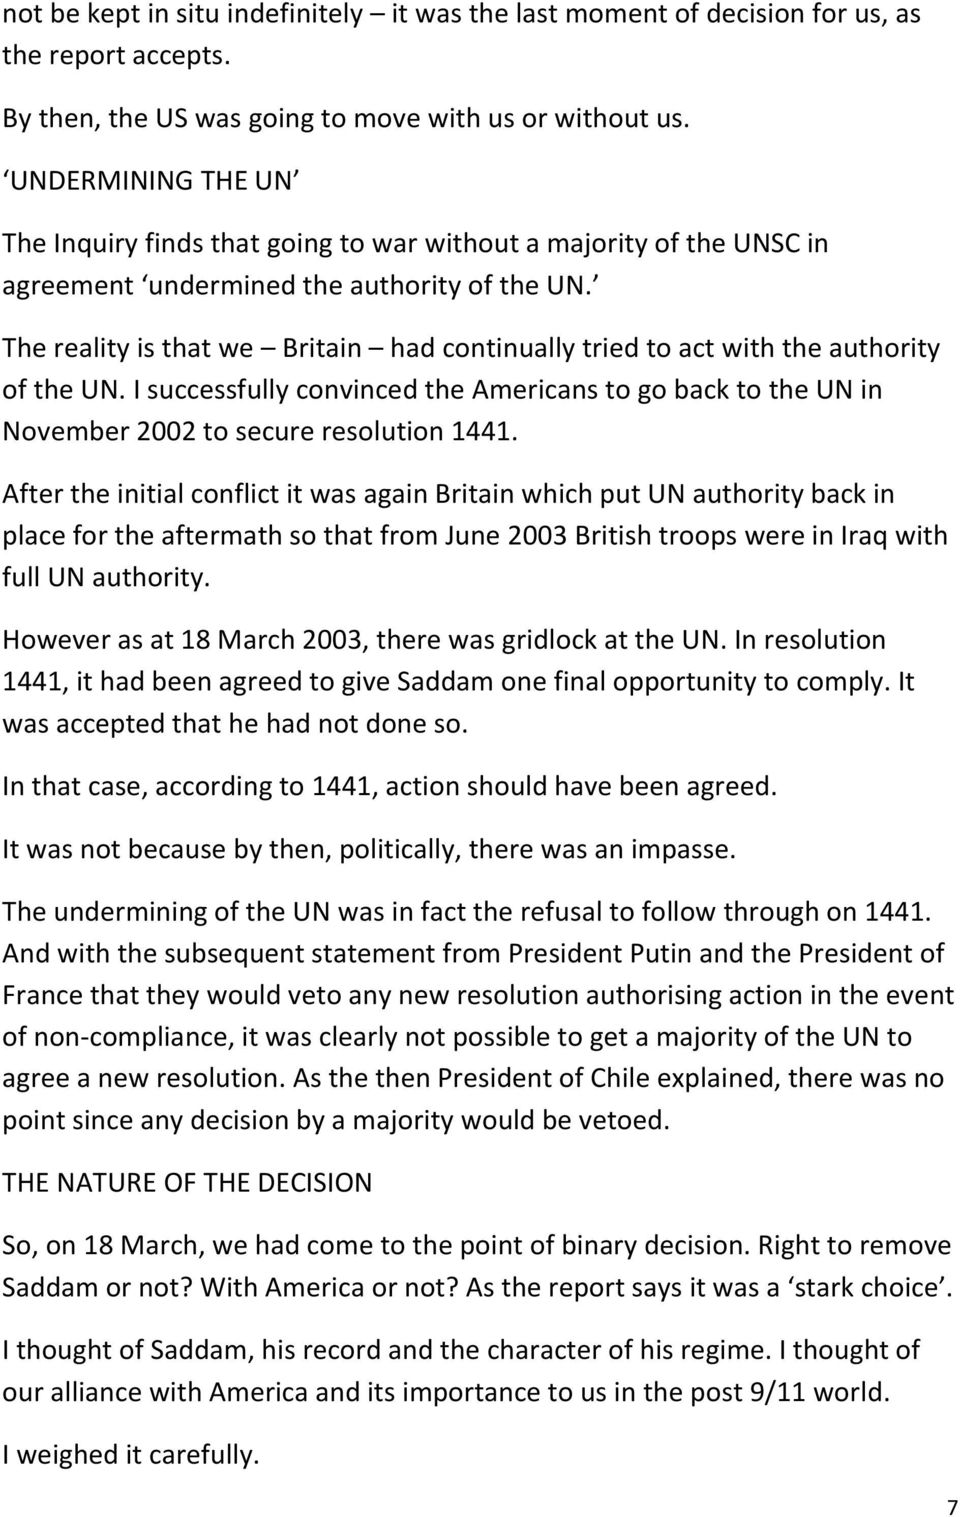 The reality is that we Britain had continually tried to act with the authority of the UN. I successfully convinced the Americans to go back to the UN in November 2002 to secure resolution 1441.